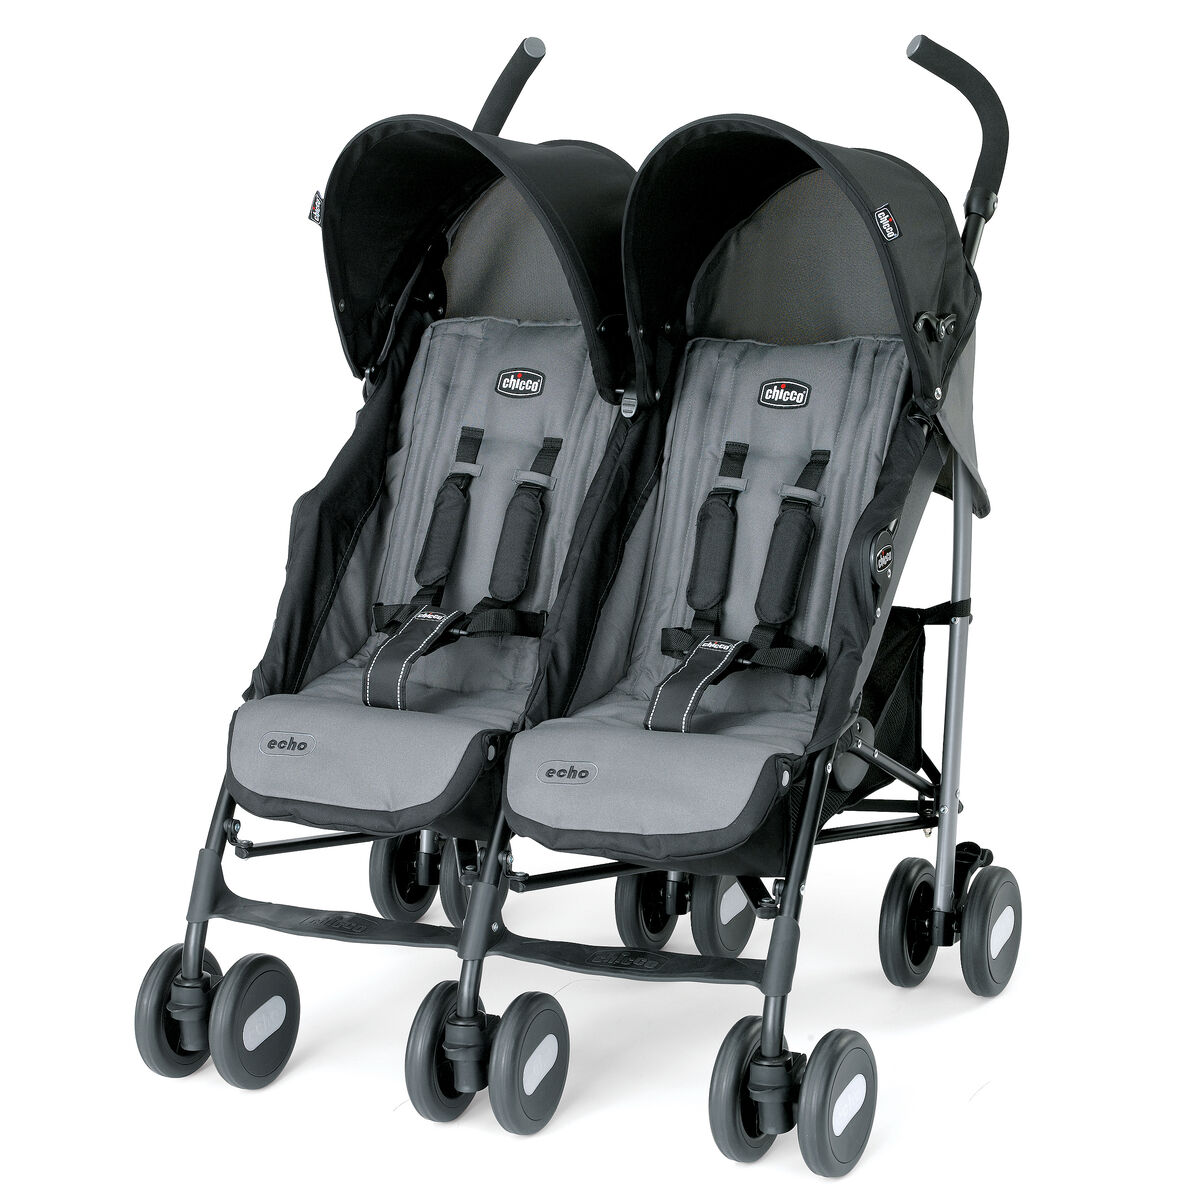 chicco chicco echo twin stroller coal. Black Bedroom Furniture Sets. Home Design Ideas